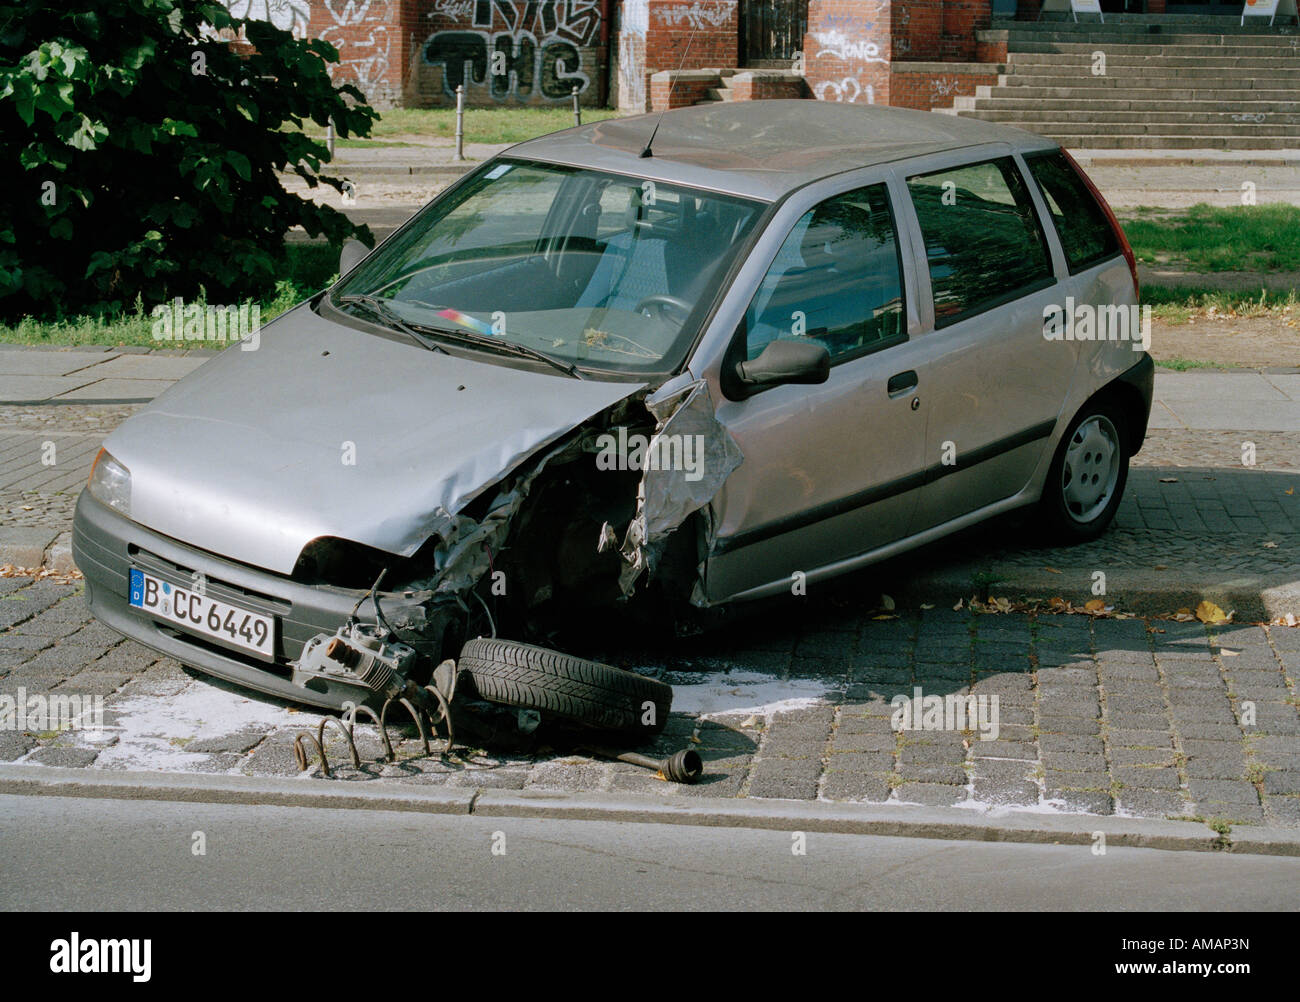 Car after an accident - Stock Image